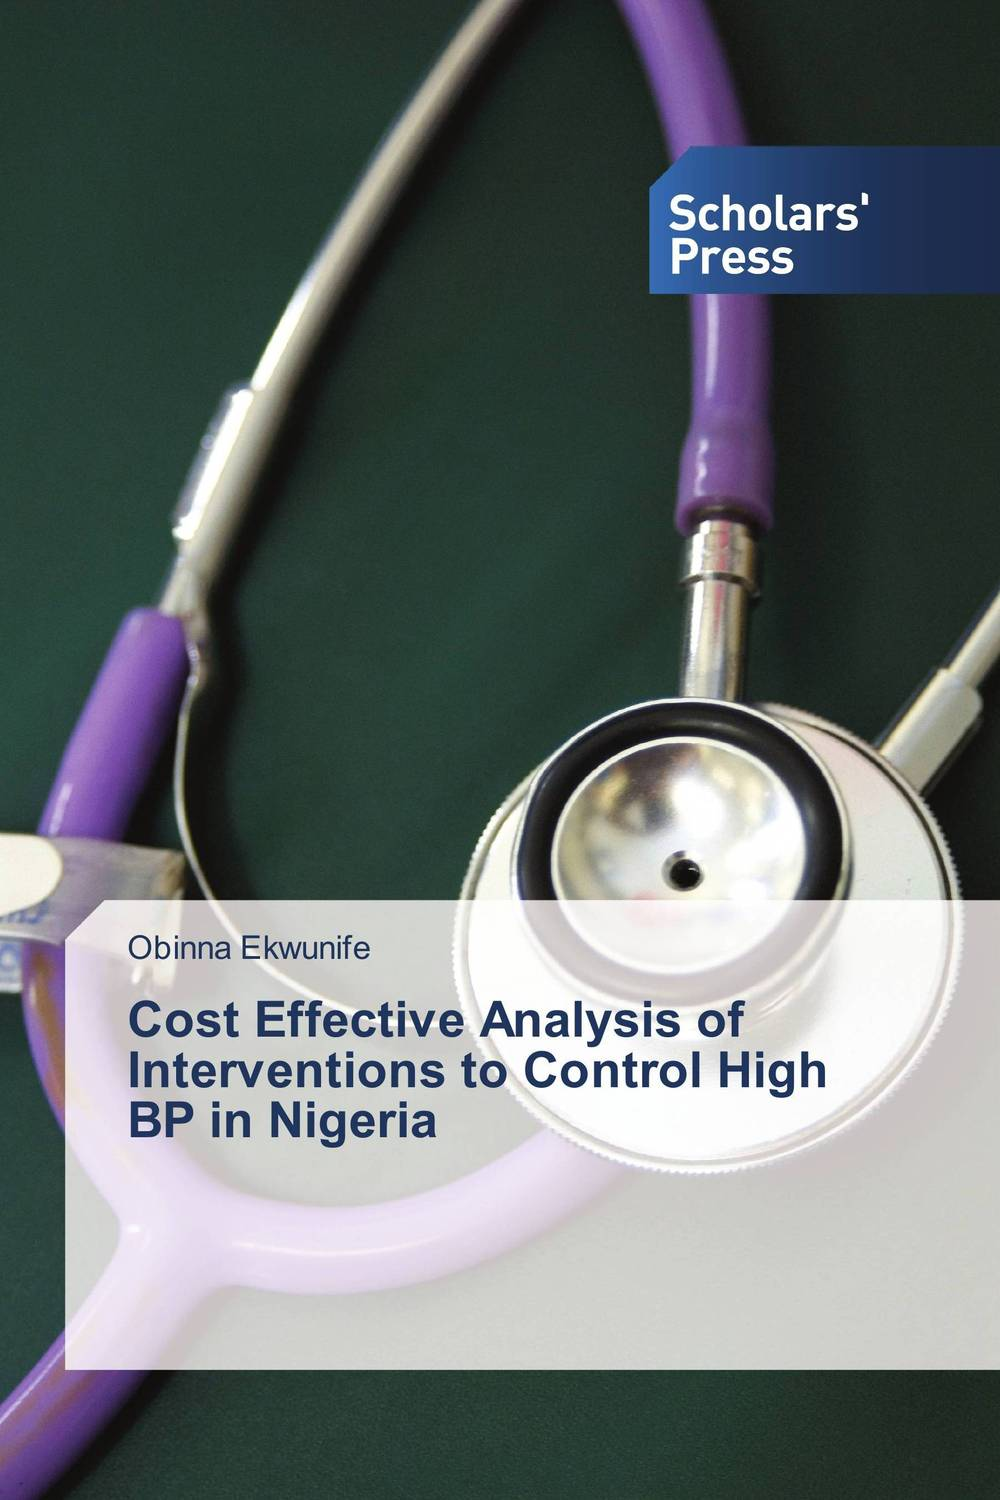 Cost Effective Analysis of Interventions to Control High BP in Nigeria driven to distraction